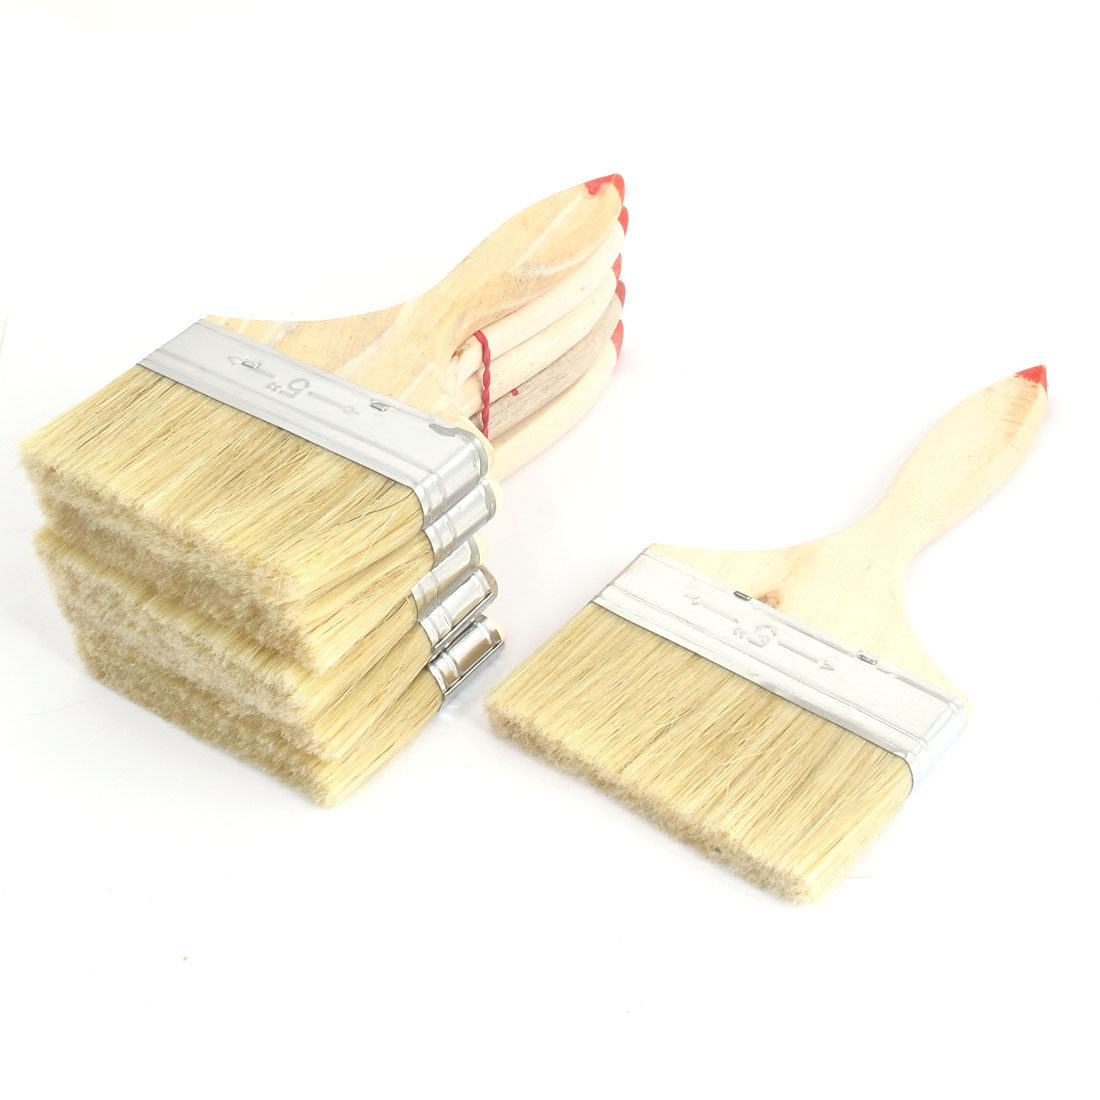 "Painter Wood Nonslip Handle Brushes Nylon Hair Paint Painting Background Blending Wall Brush 6 Pcs 5"" Width Beige"